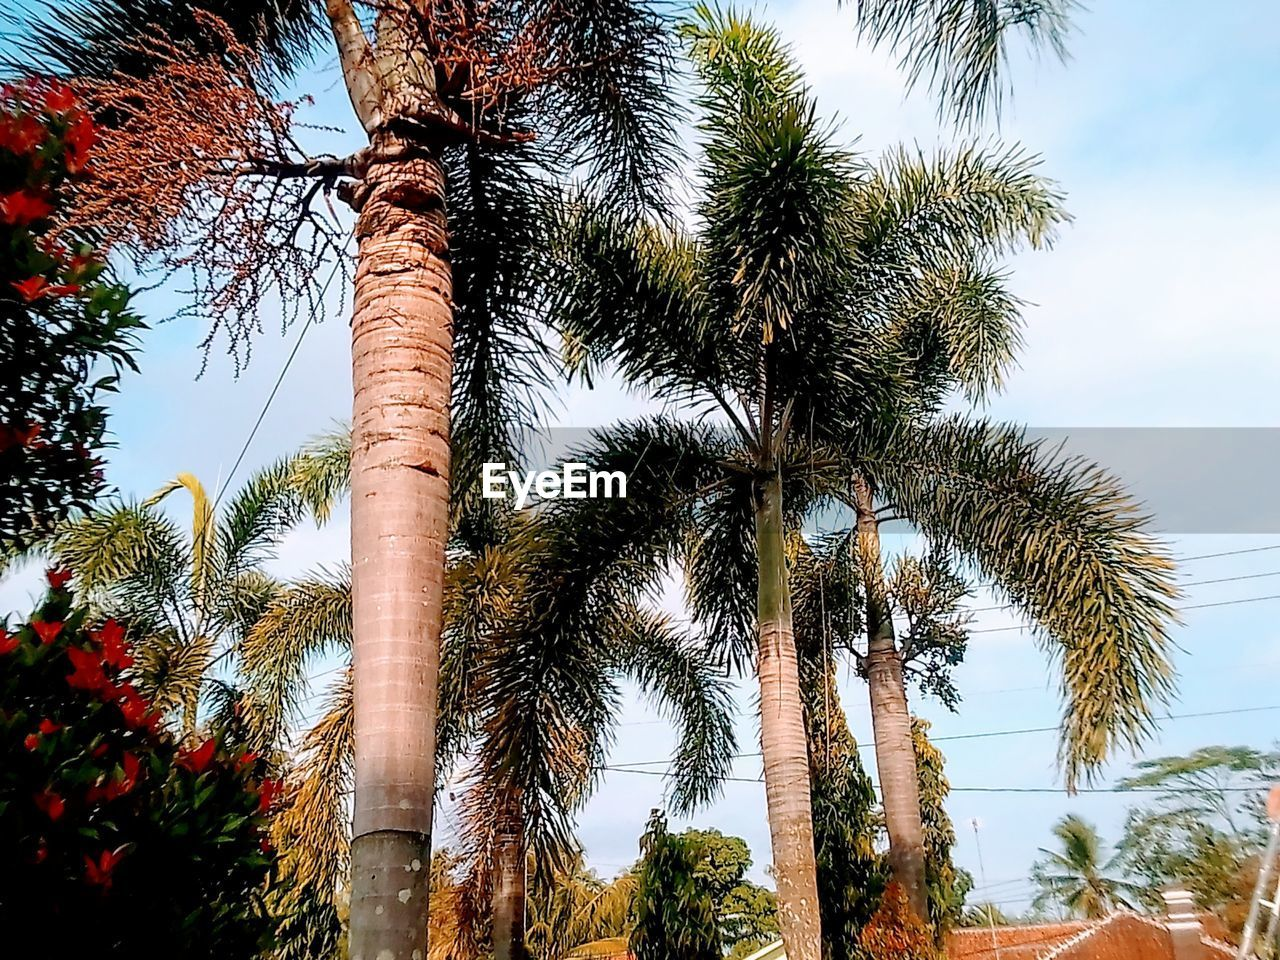 tree, plant, low angle view, sky, growth, palm tree, tropical climate, tree trunk, trunk, nature, tall - high, day, no people, outdoors, beauty in nature, tranquility, green color, branch, sunlight, clear sky, tropical tree, coconut palm tree, treelined, palm leaf